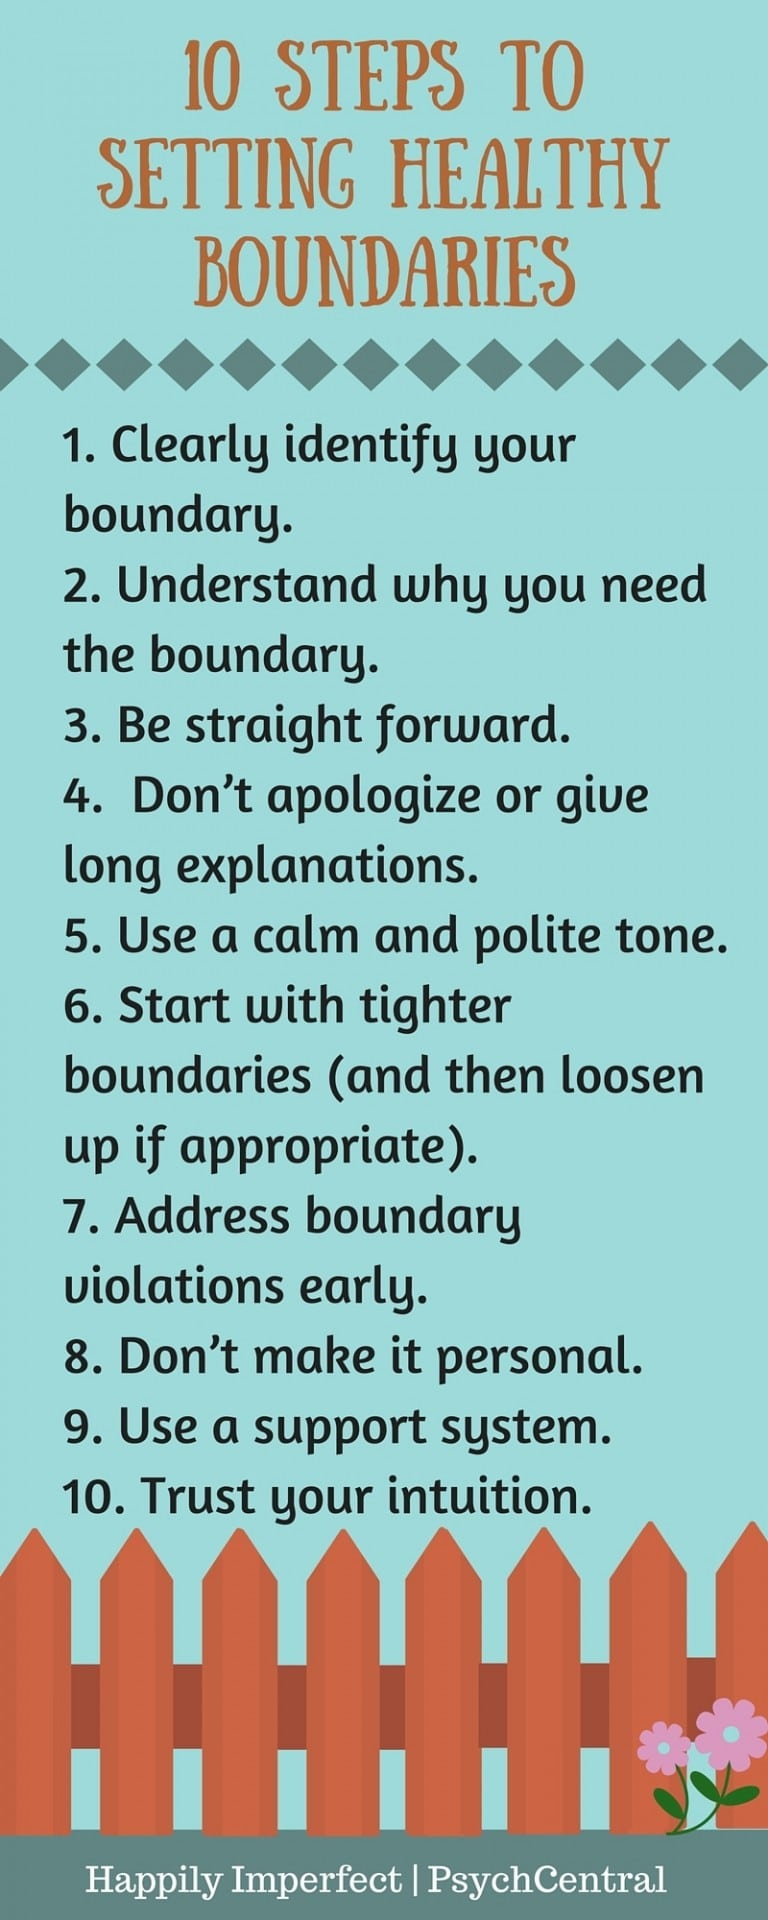 This is a great summary of forming and managing healthy boundaries from PsychCentral!